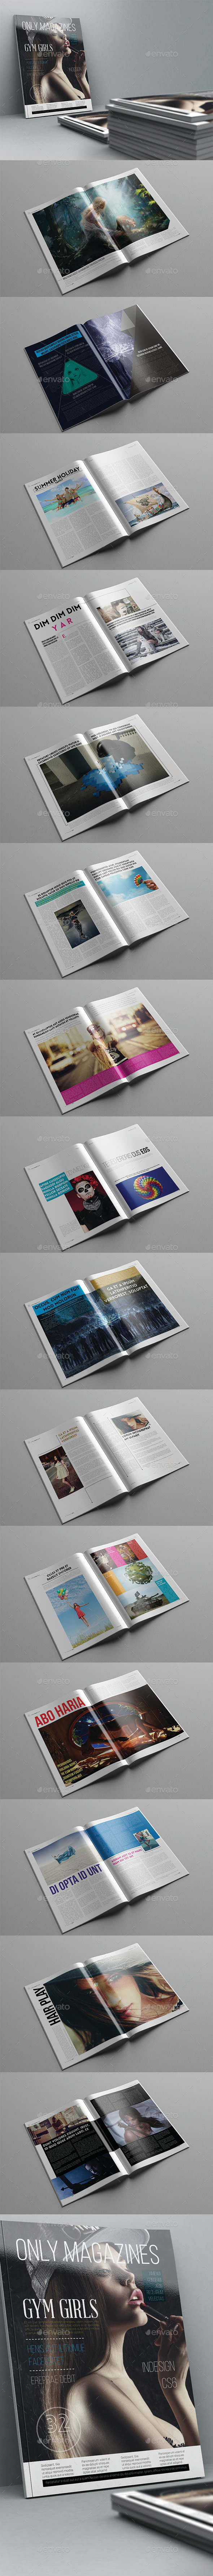 Only Magazine Template 32 Pages - Magazines Print Templates